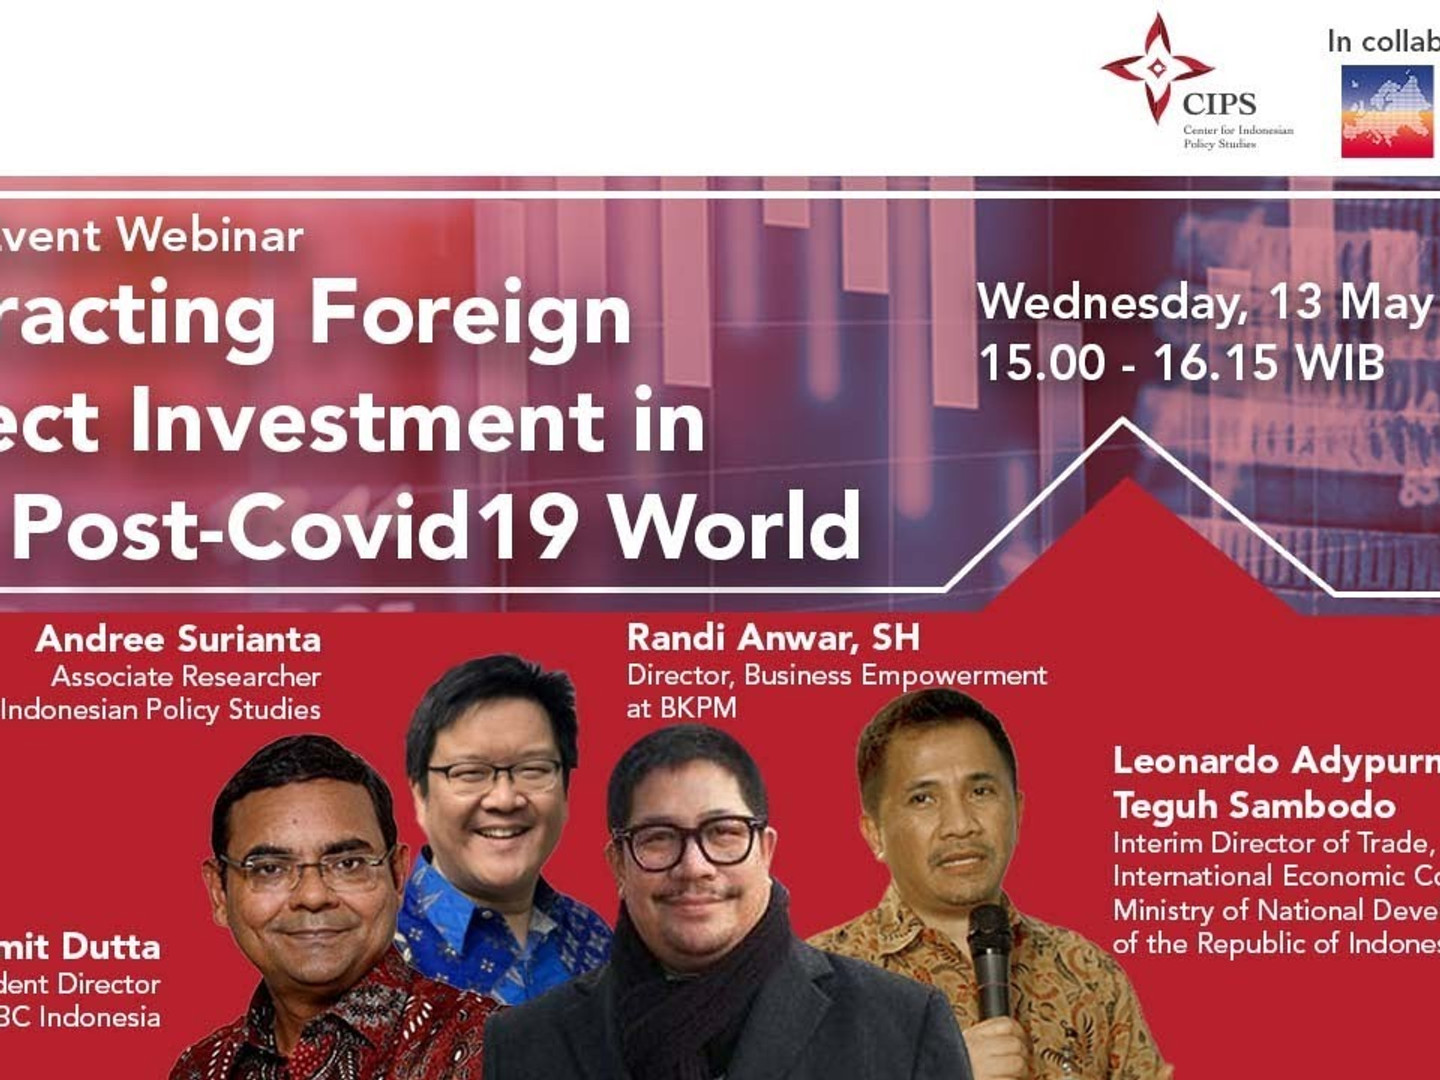 Webinar on Atrracting Foreign Direct Investment in Post Covi19 World